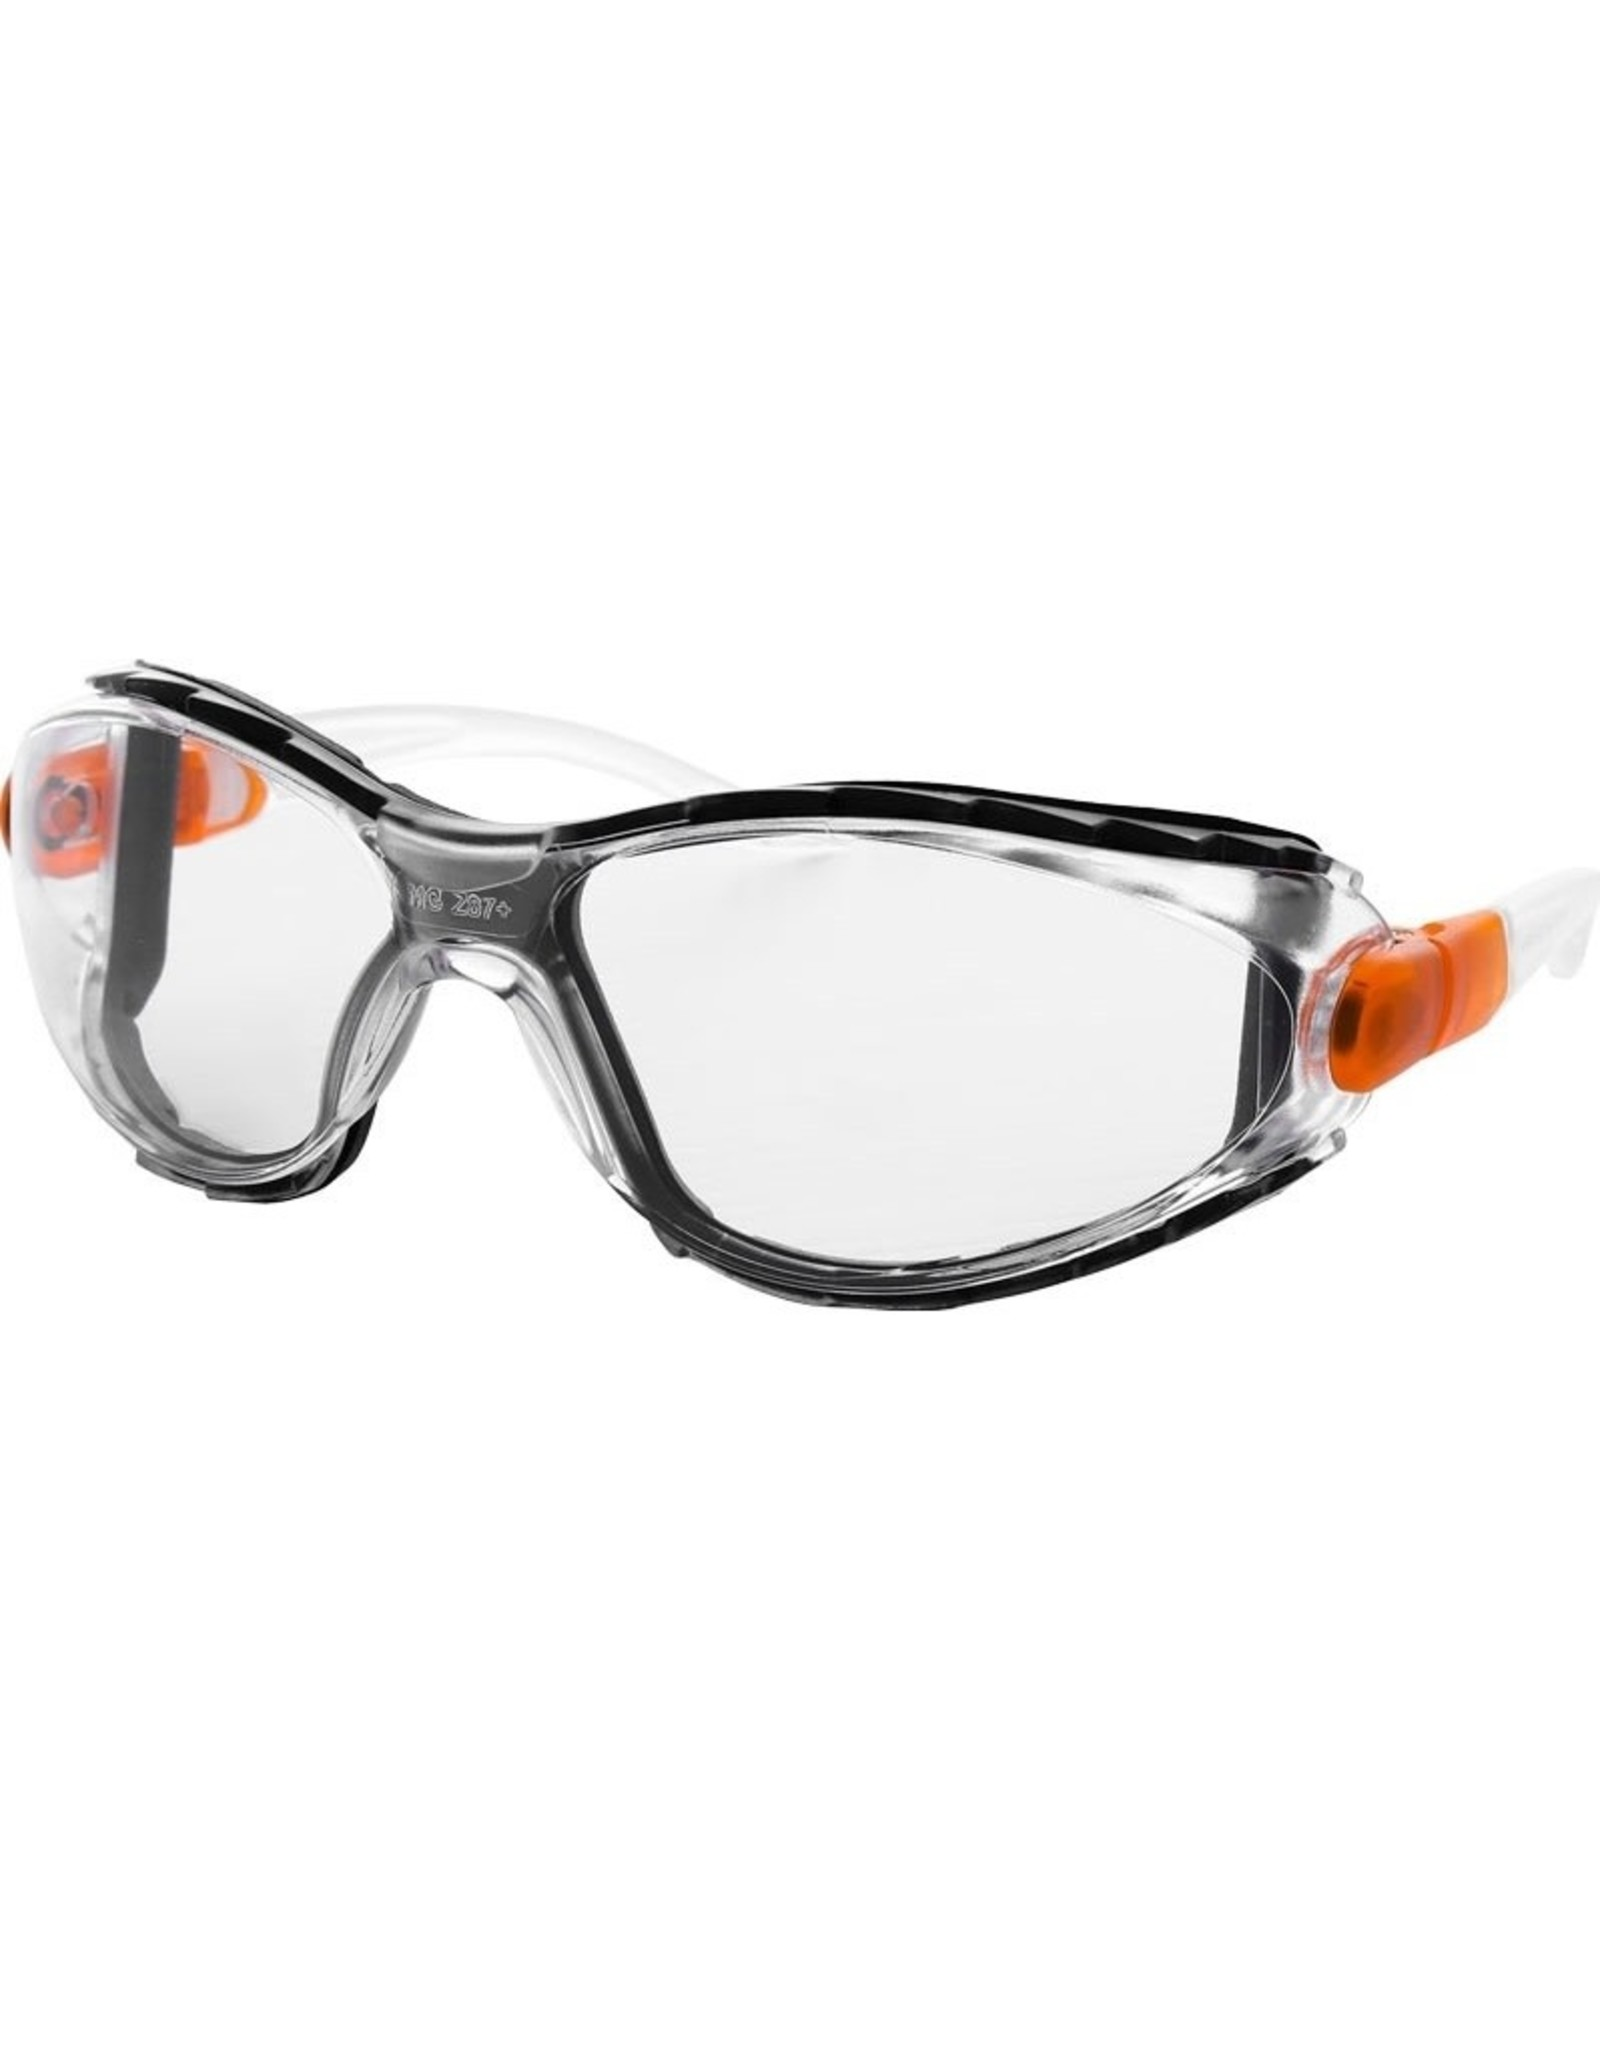 Majestic Glove Riot Shield Safety Glasses and Goggles with Clear Anti-Fog Lens